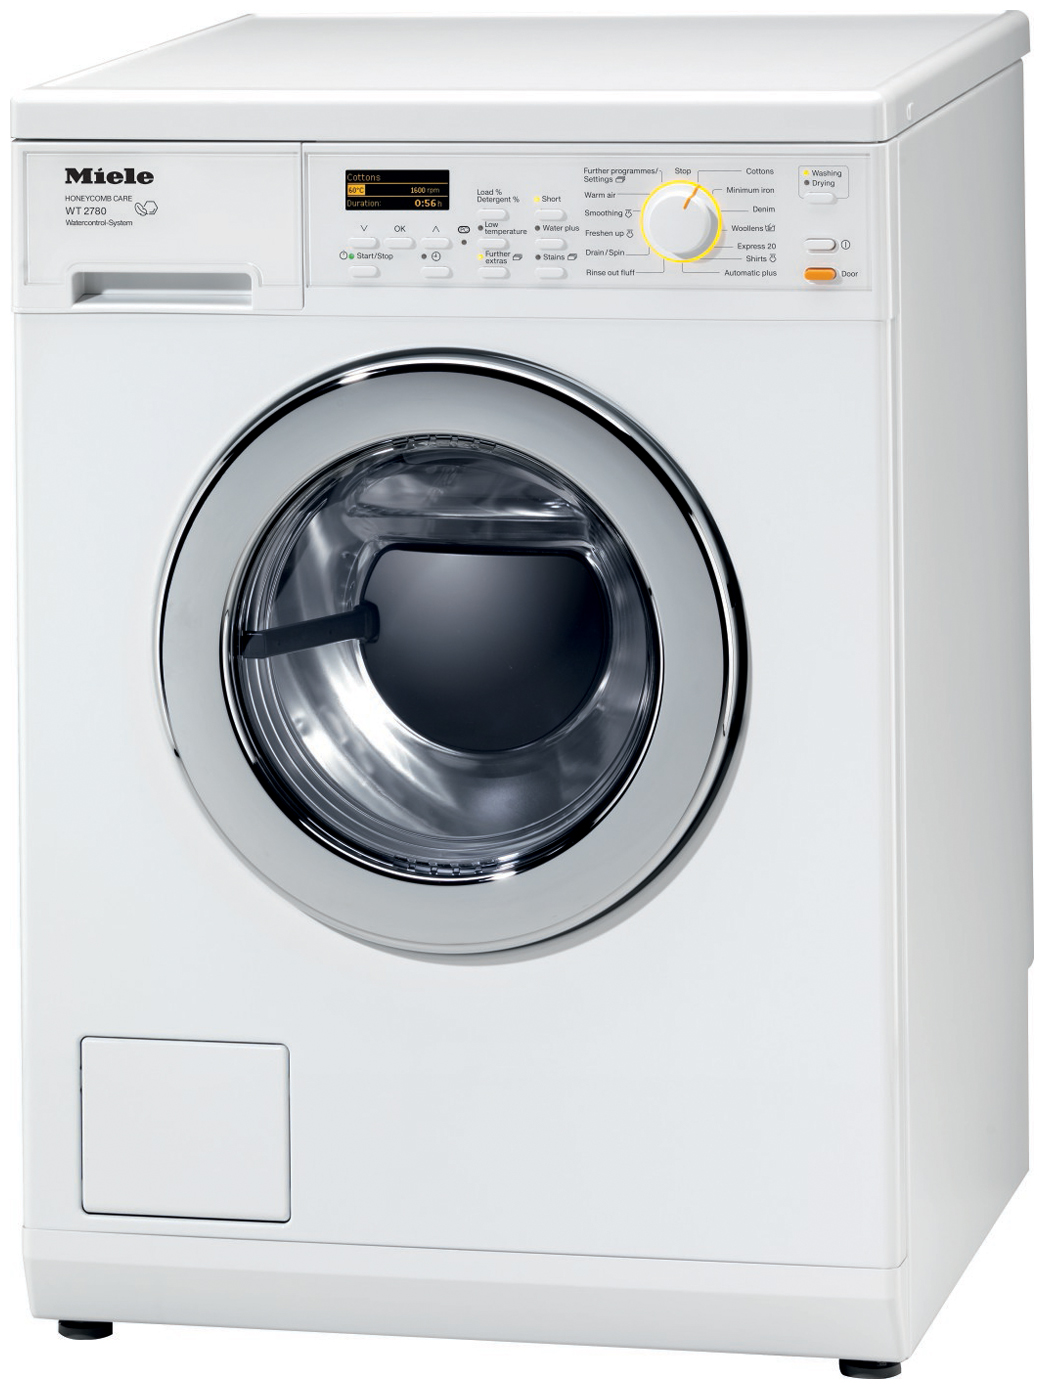 Washing Machines And Dryers ~ Buy washing machine miele washer dryer or separate